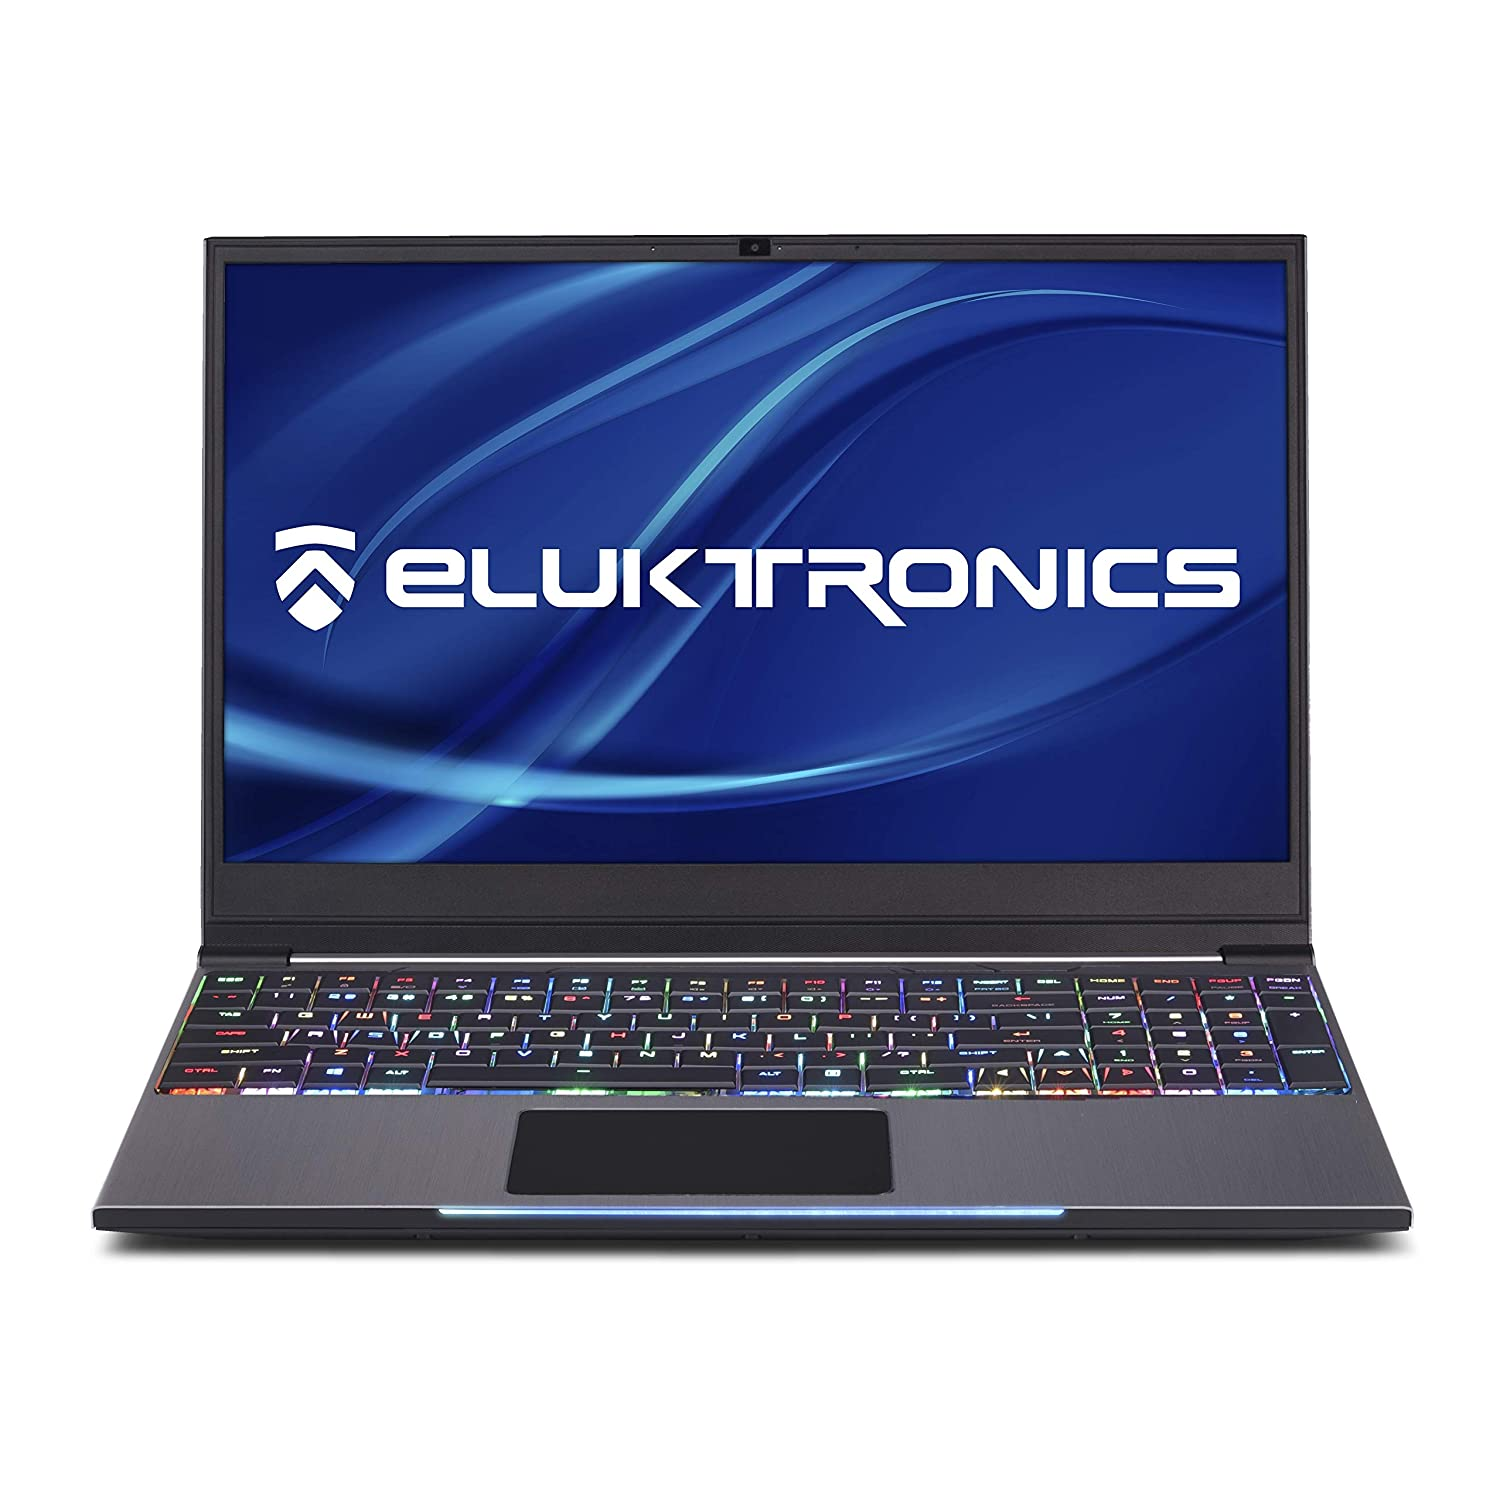 [Customize Your Own] Eluktronics Mech-15 G2Rx 15 6